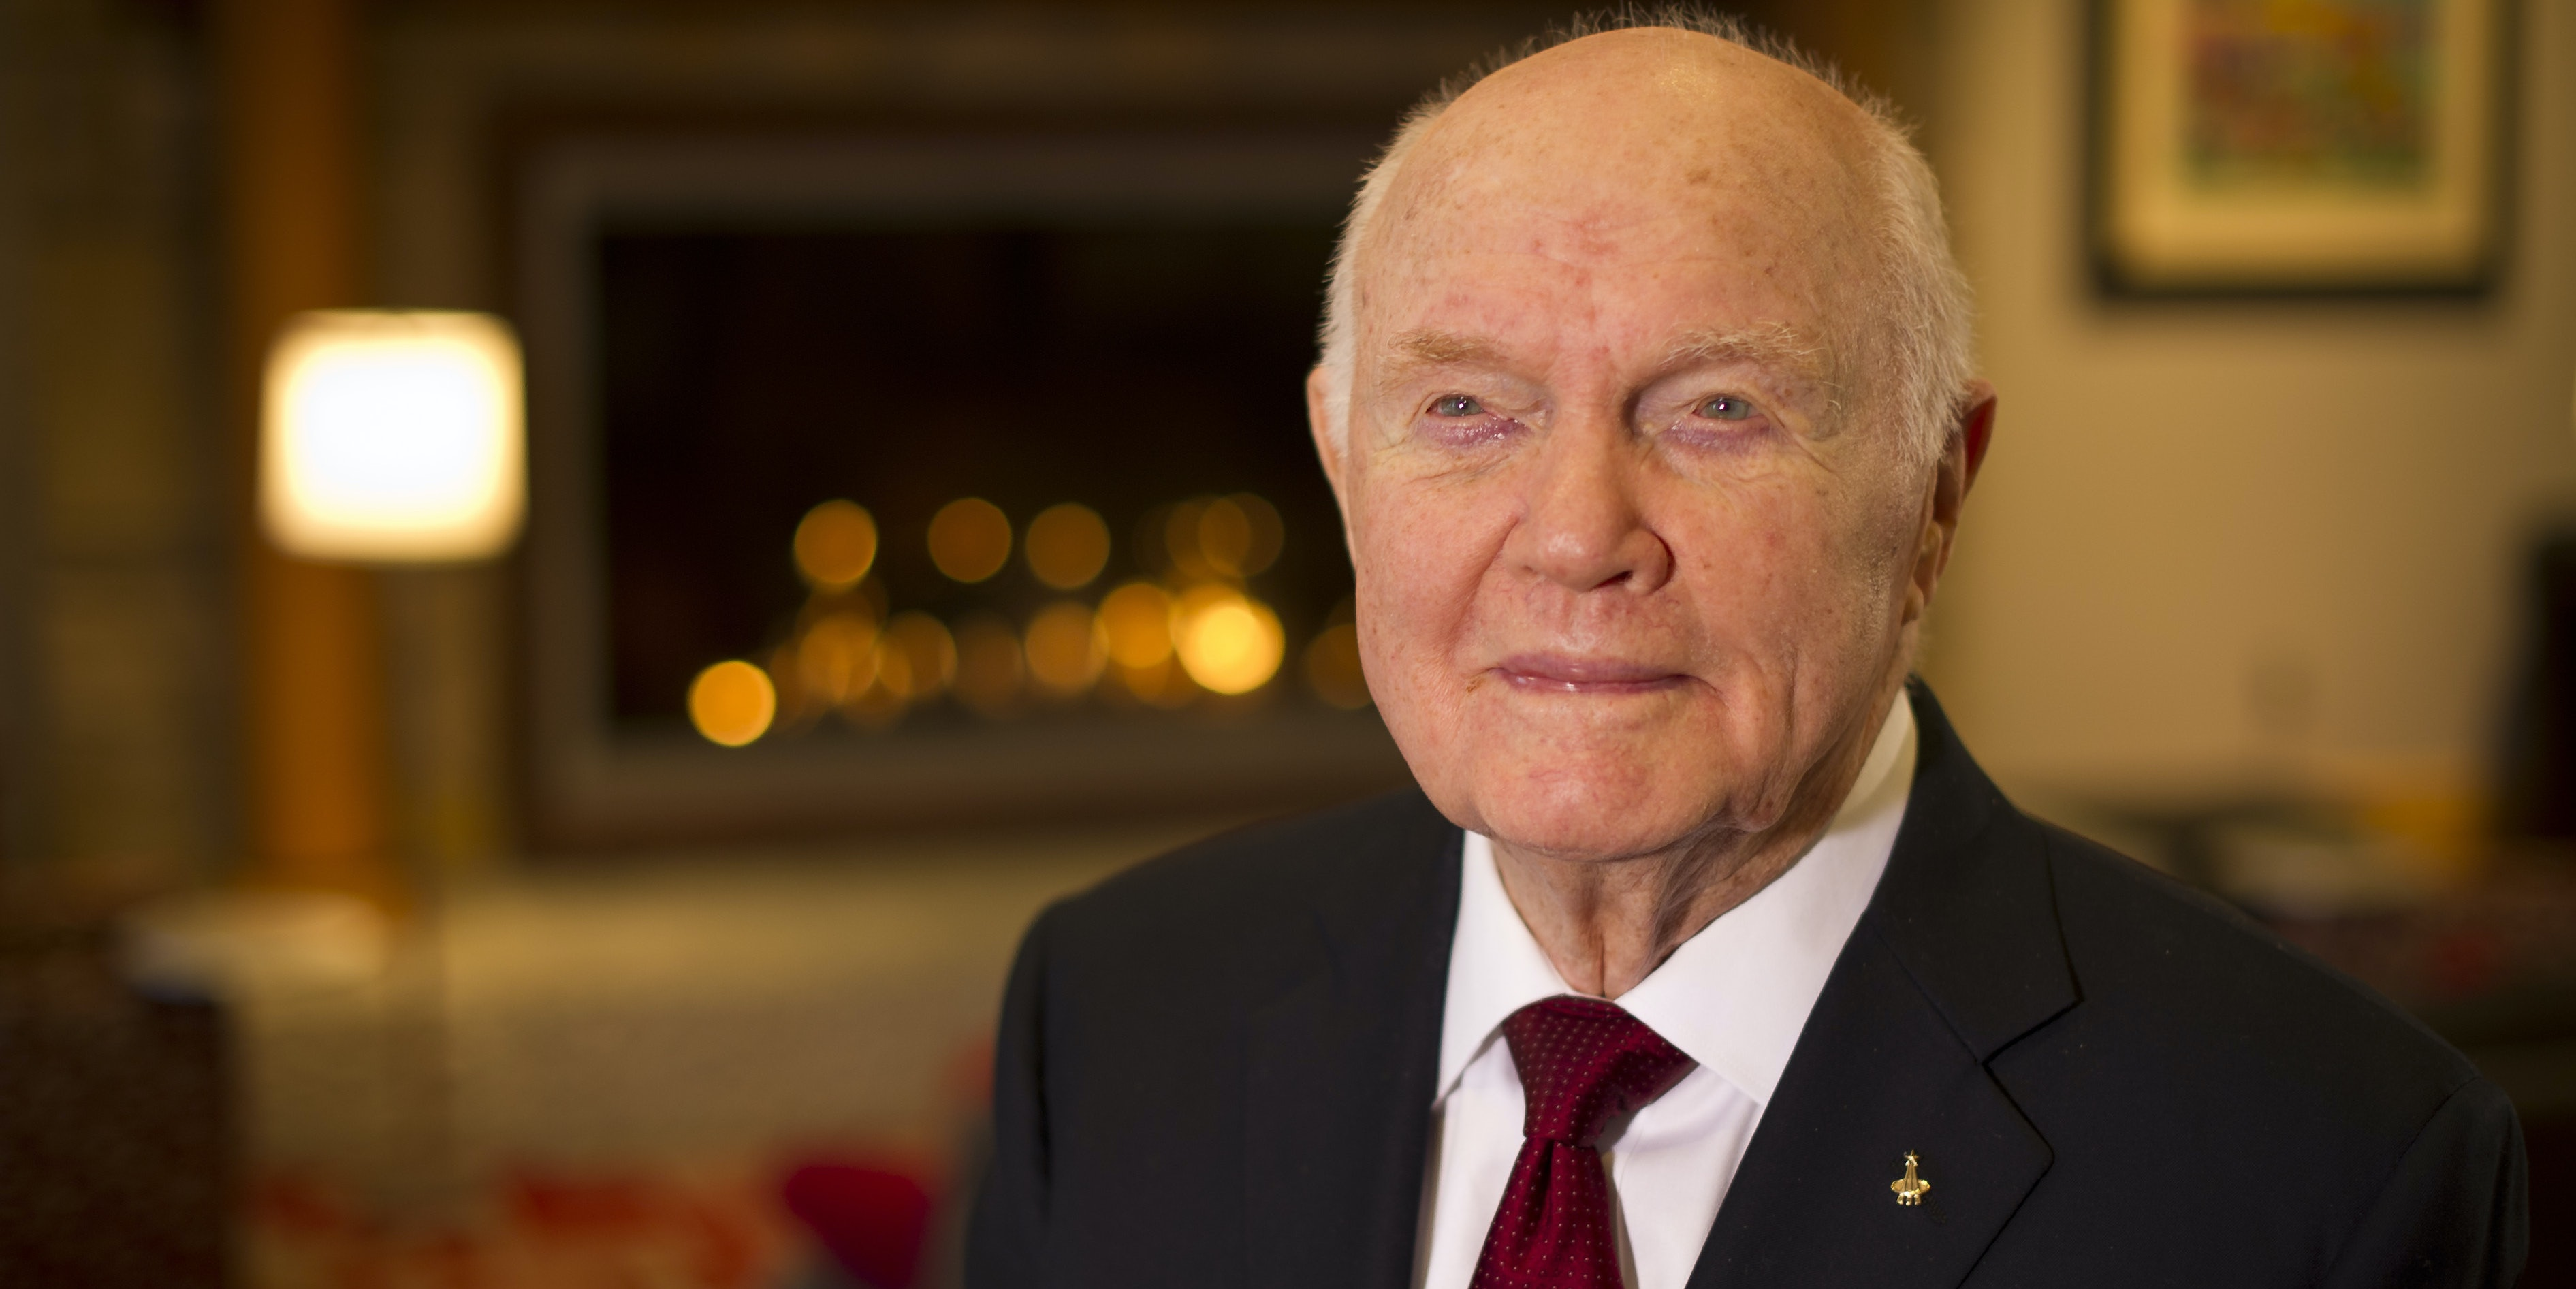 COLUMBUS, OHIO - FEBRUARY 20:  In this handout provided by NASA, former U.S. Sen. and astronaut John Glenn poses for a portrait shortly after doing live television interviews from the Ohio State University Union building on February 20, 2012 in Columbus, Ohio. Today marks the 50th anniversary of Glenn's historic flight as the first American to orbit Earth.  (Photo by Bill Ingalls/NASA via Getty Images)